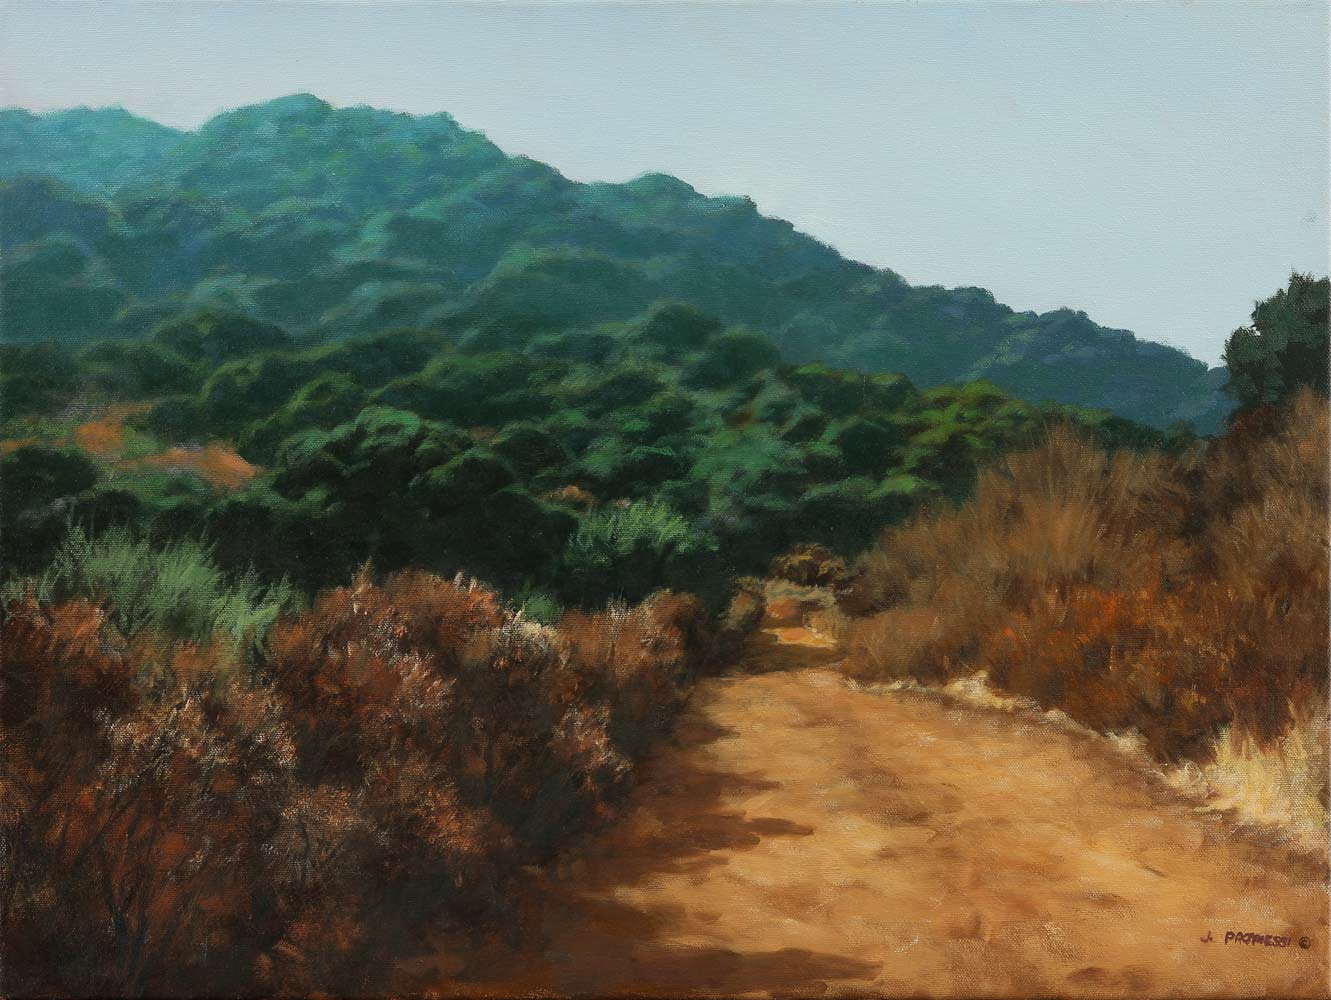 PG & E Trail, oil painting by Jim Promessi, 18 x 26""